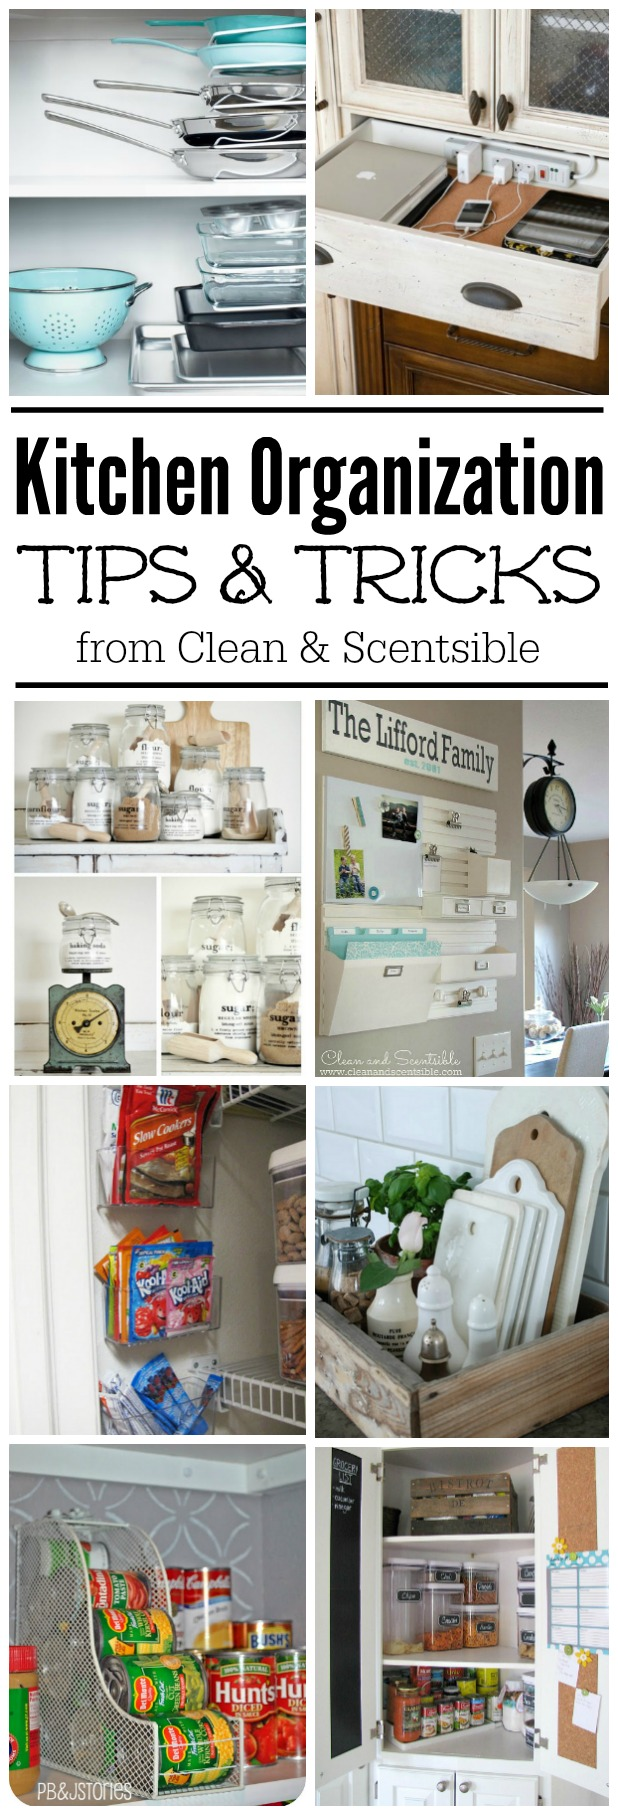 Easy Kitchen Organization Ideas  Clean and Scentsible